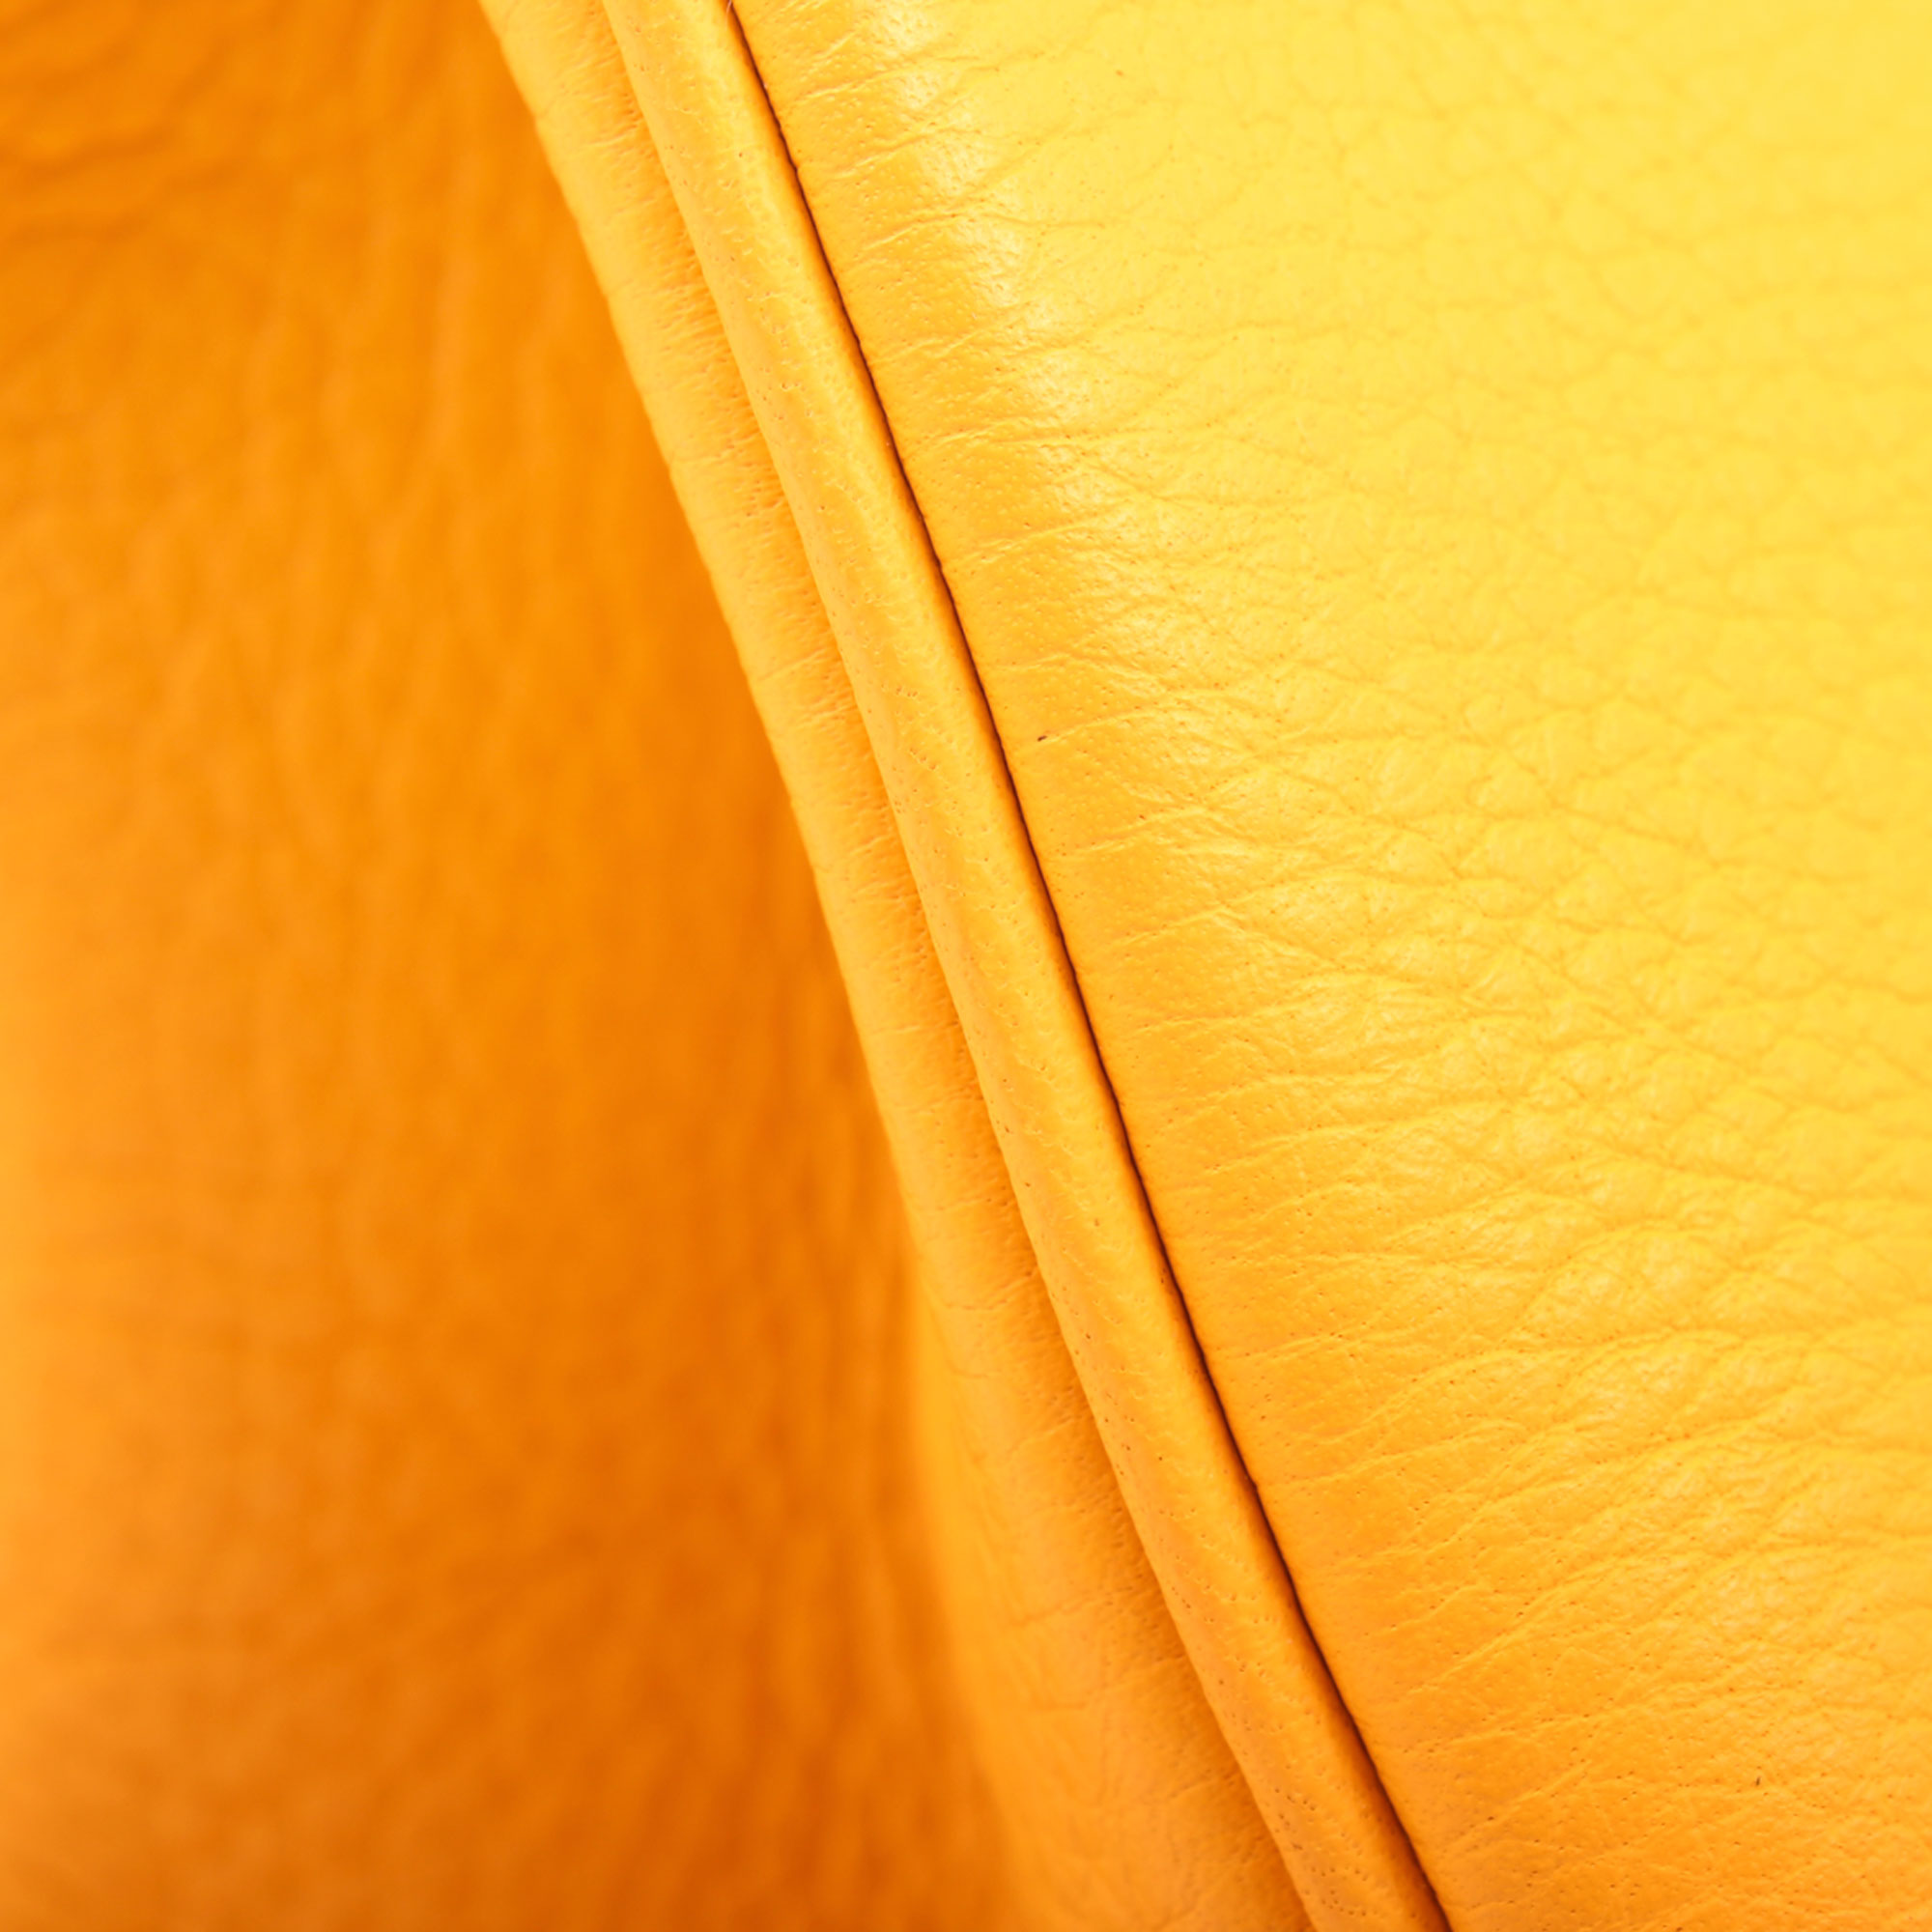 Leather detail image of hermes birkin 35 jaune togo leather